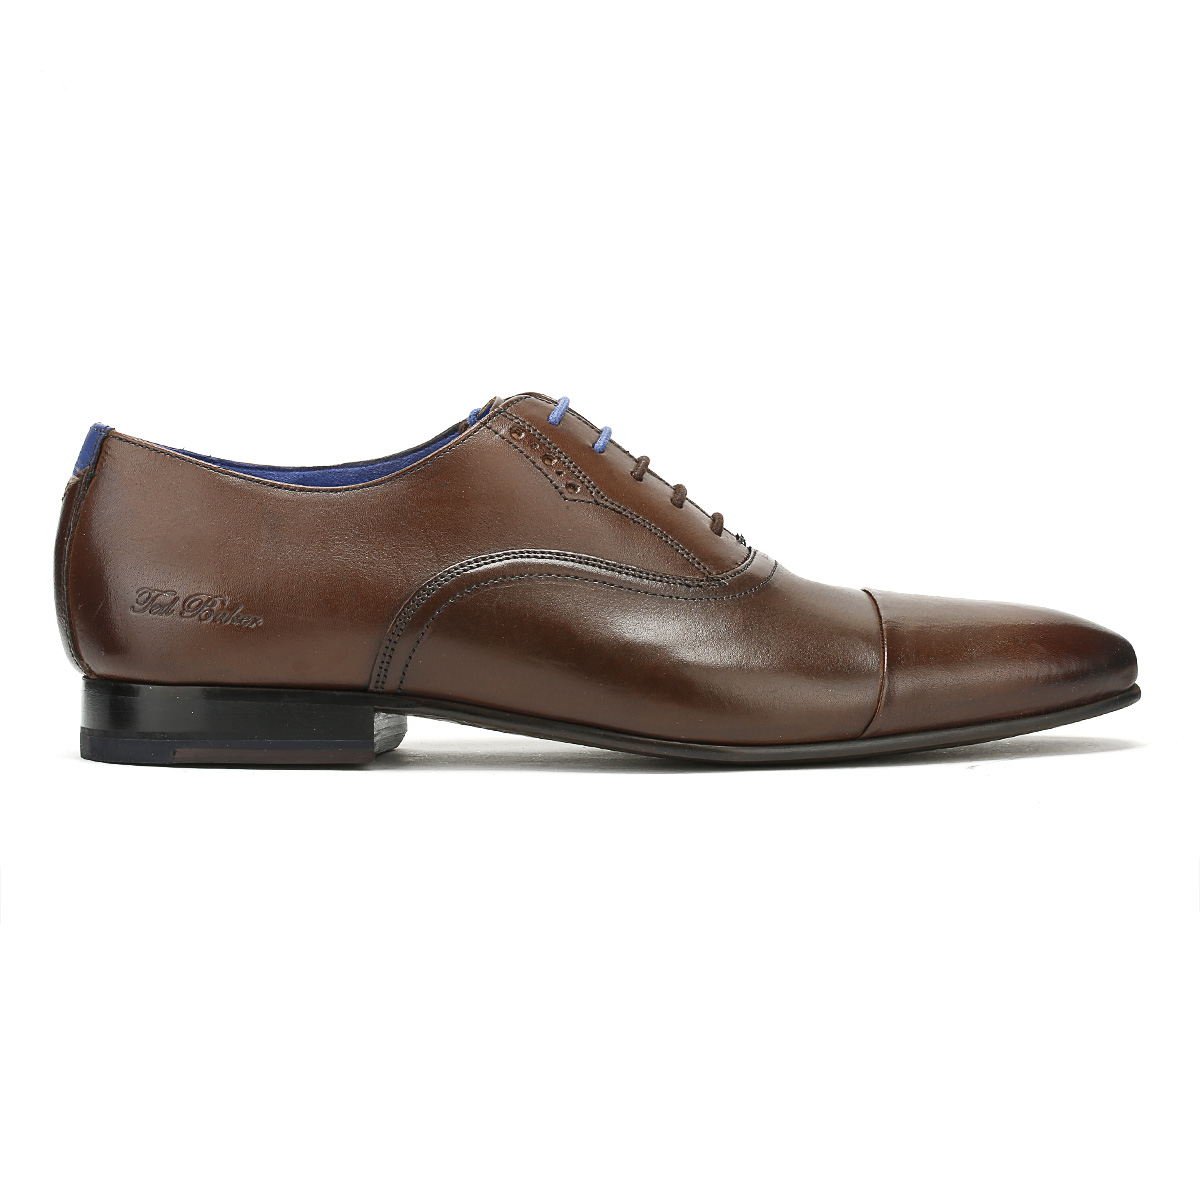 Ted Baker  Uomo Formal Lace Schuhes Braun Leder Murain Lace Formal Up Smarts 2535a1